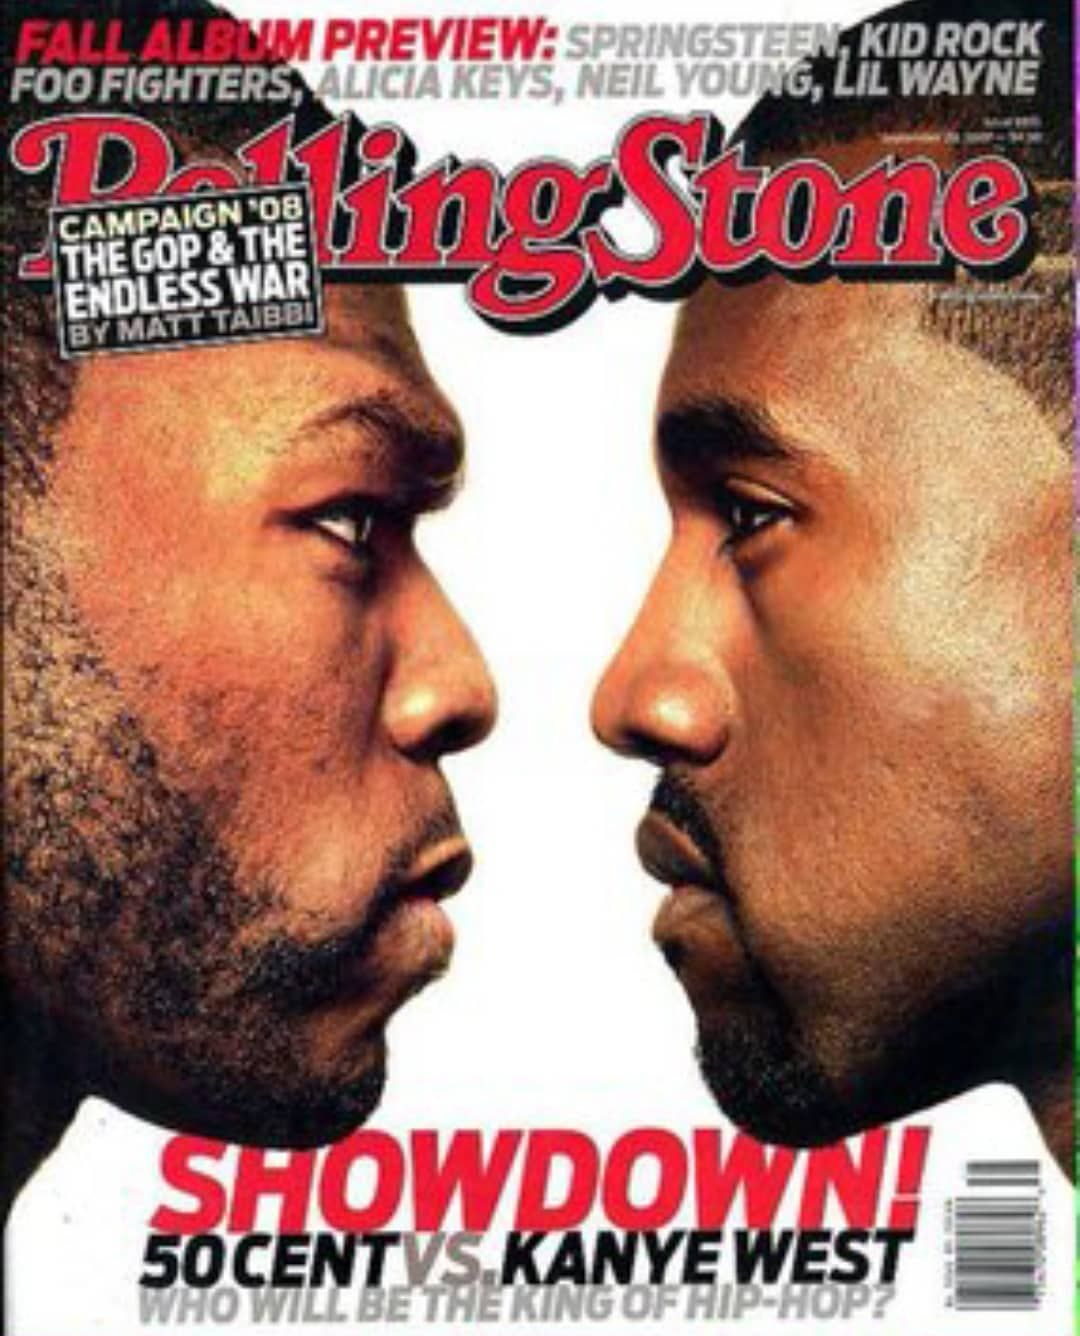 12 Years Ago Today The Highly Anticipated Kanye Vs 50cent Album 1st Week Sales Showdown Went Rolling Stone Magazine Cover Rolling Stones Magazine Kanye West